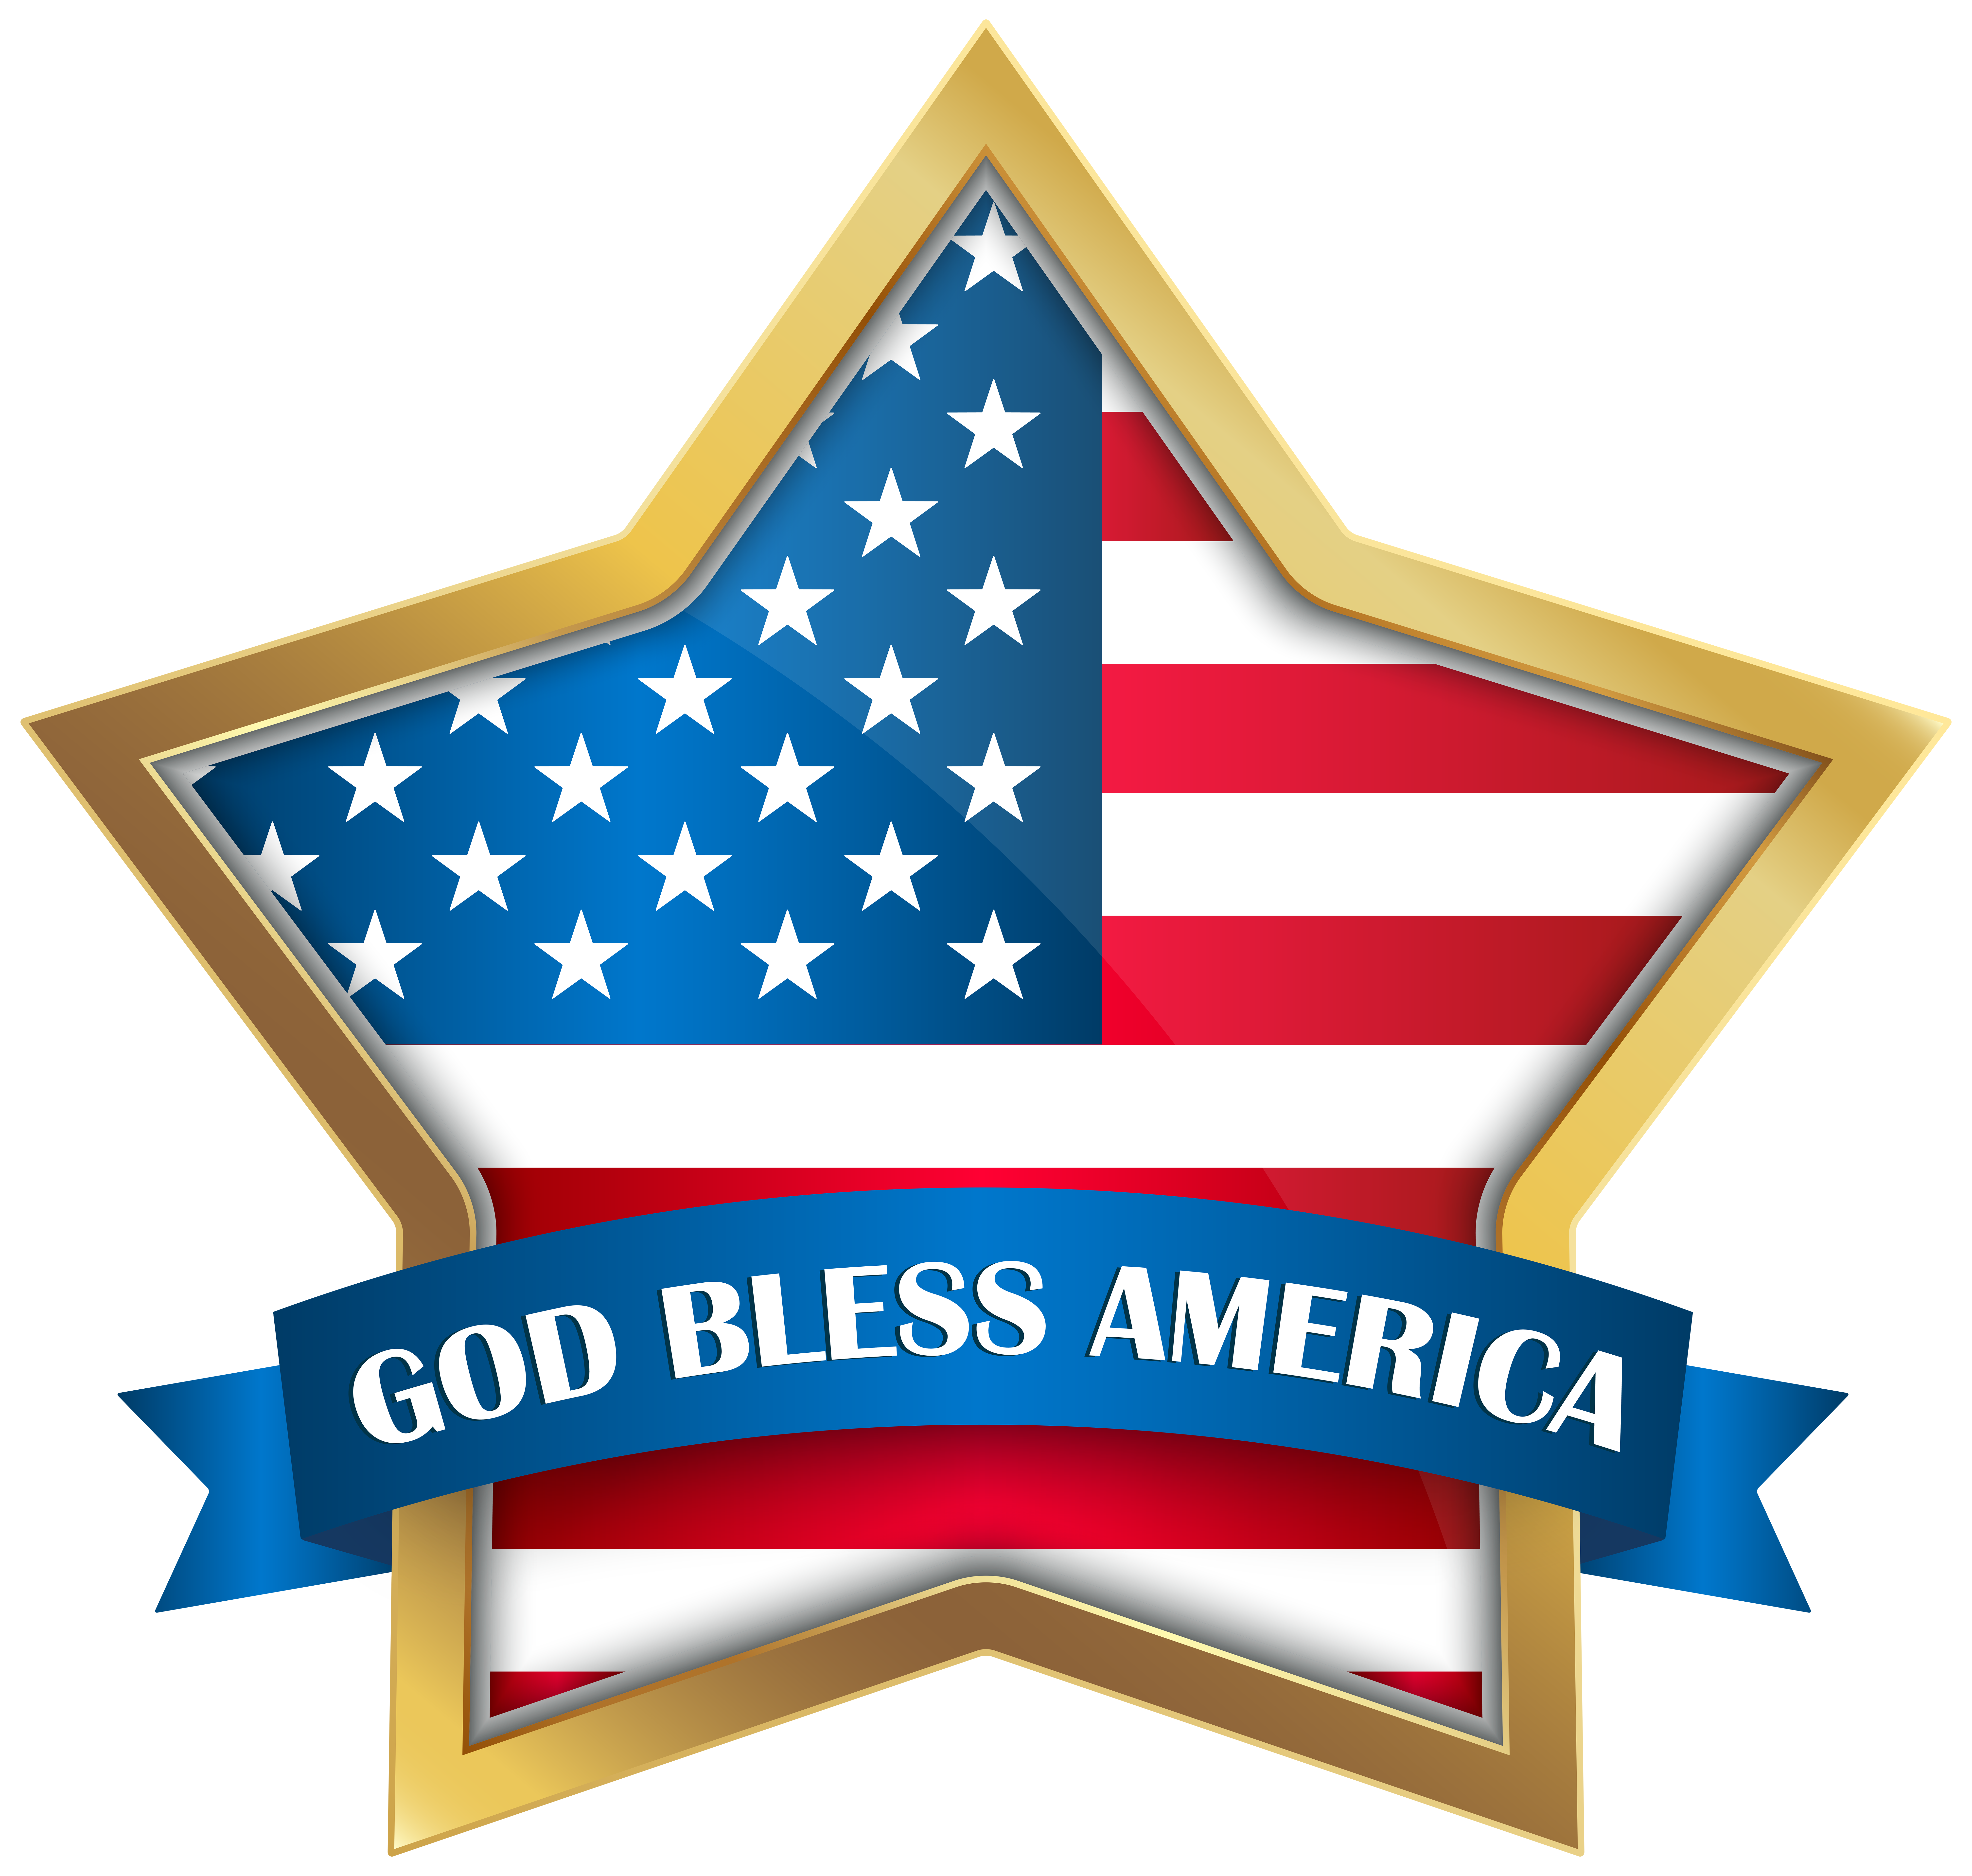 Free star graphics clipart vector transparent God Bless America Star PNG Clip Art Image | Gallery Yopriceville ... vector transparent